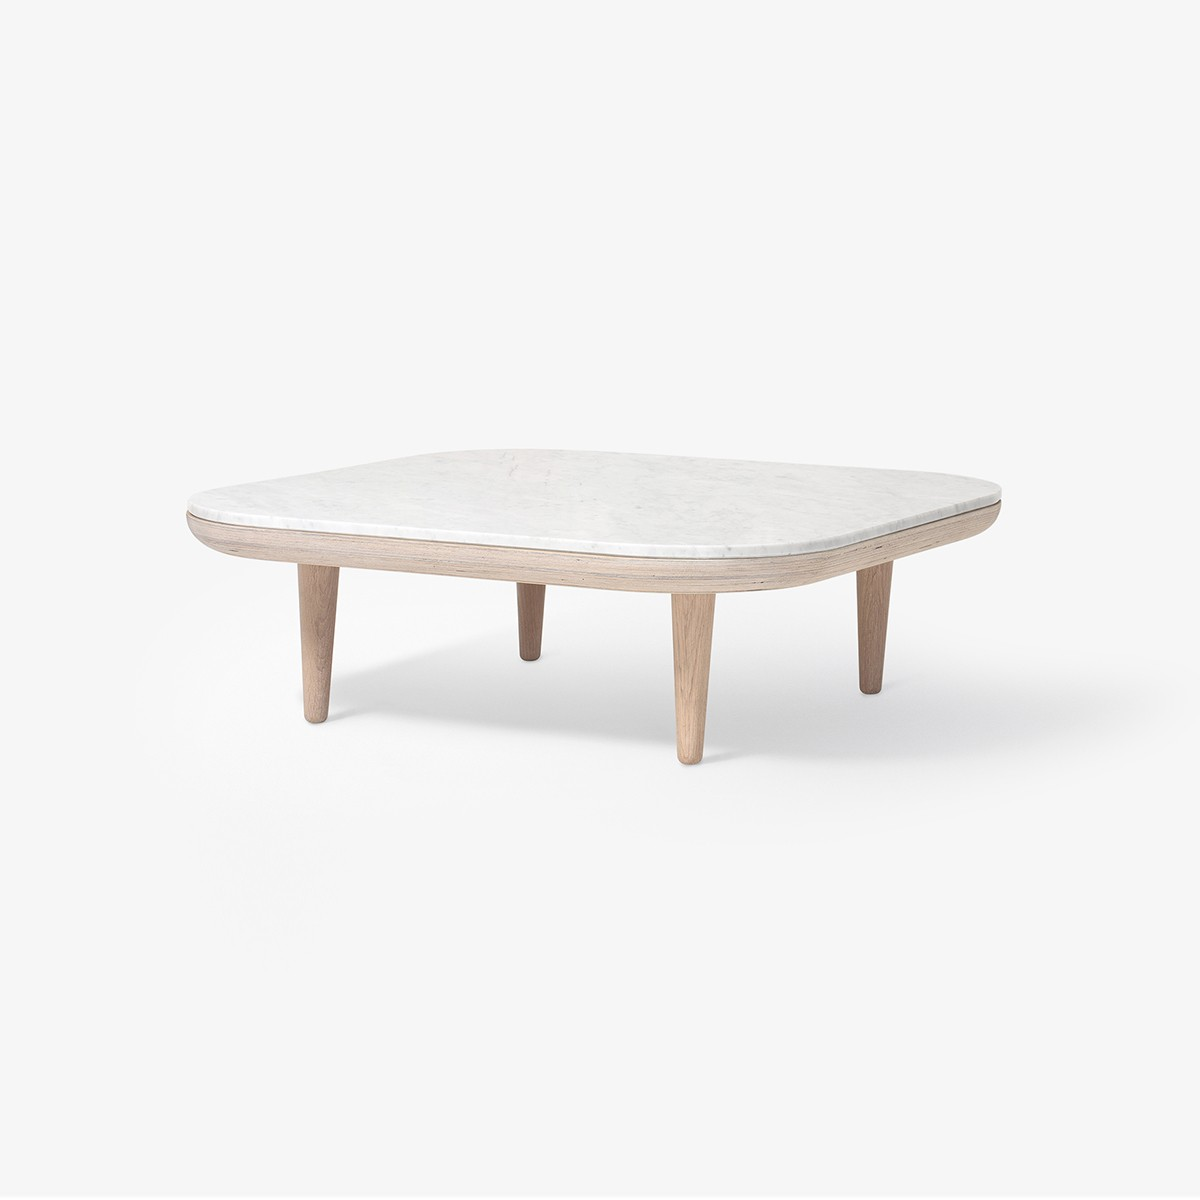 Table basse ocean fly mobilier design d coration d for Table basse scandinave marbre